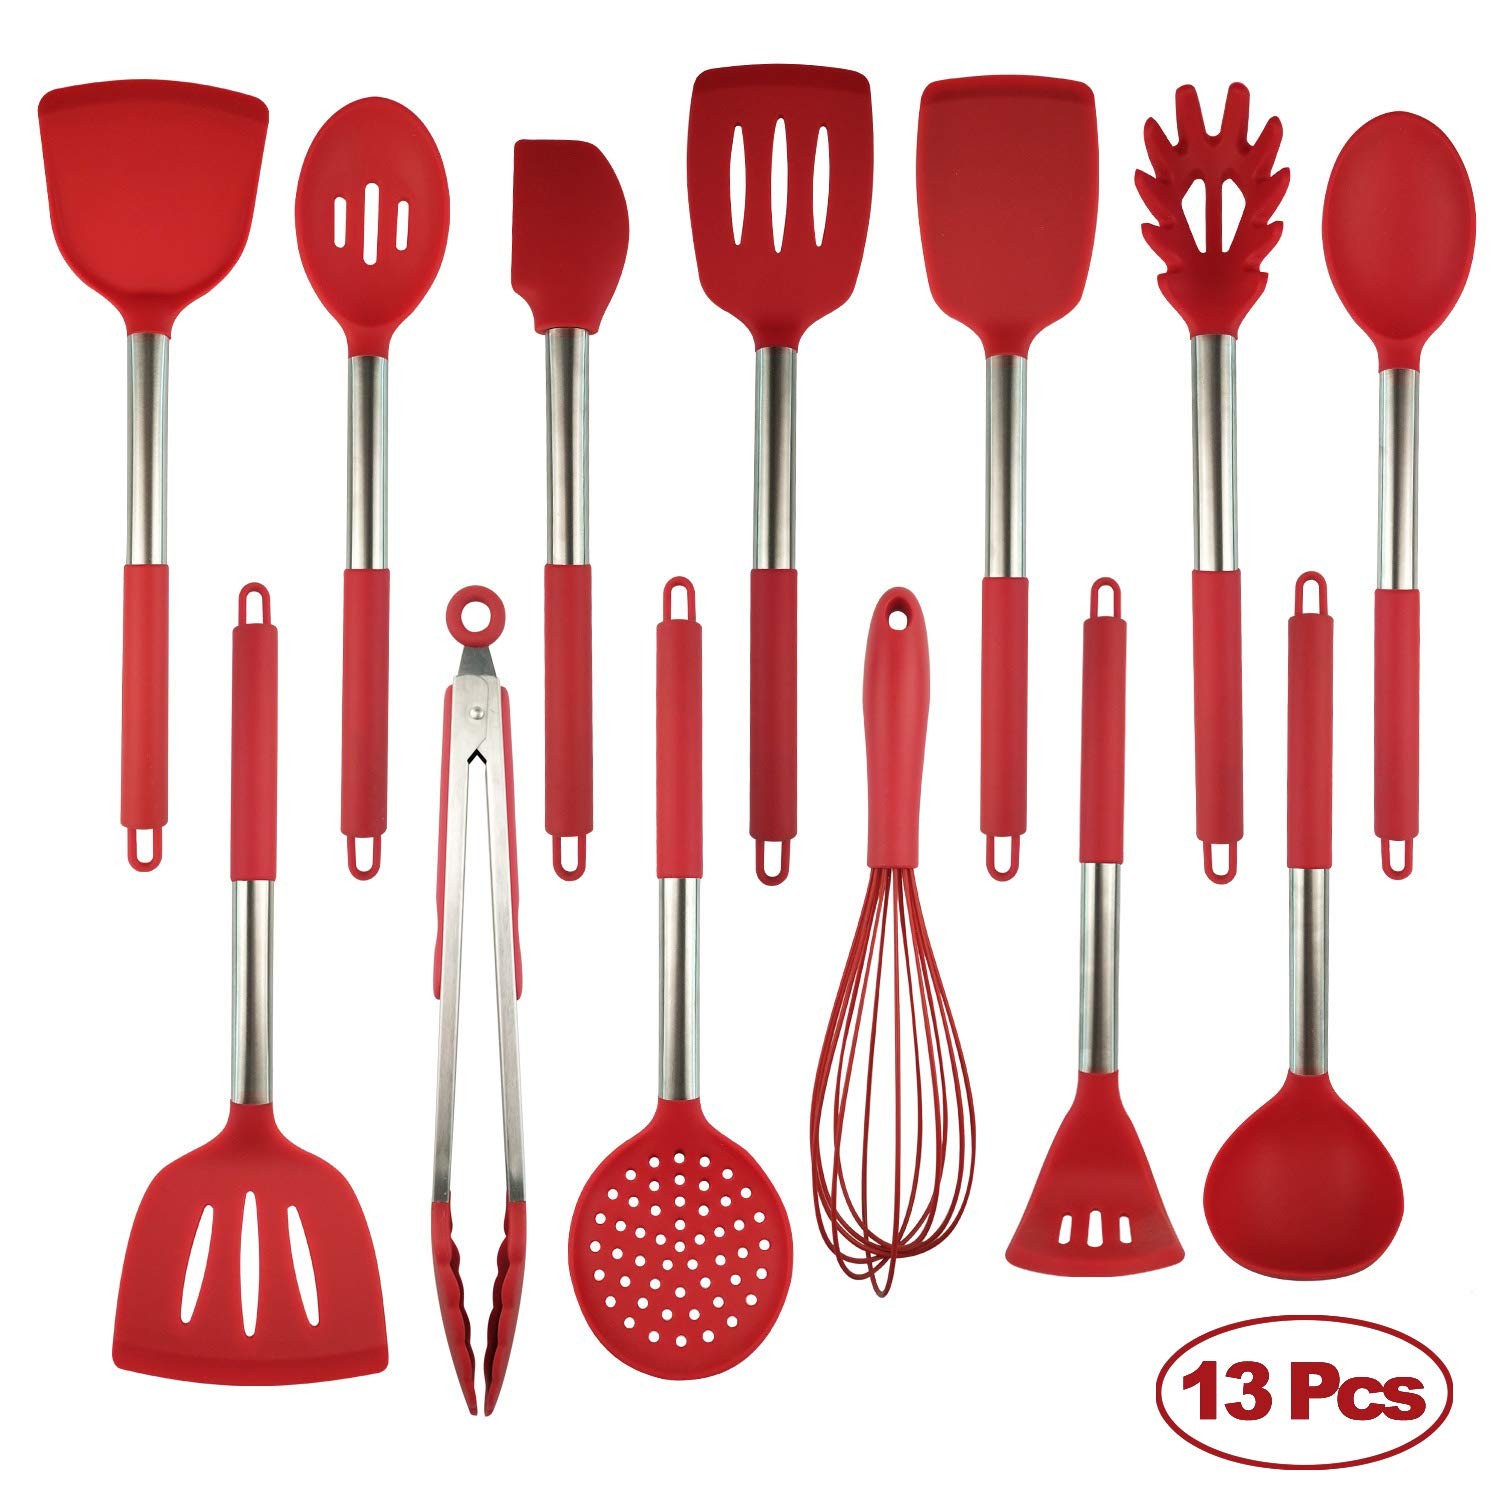 Silicone Cooking Utensils Set, Heat Resistant and Non Stick Kitchen Utensil Set with Stainless Steel Handle (Red-13pcs) by Smart Cutter